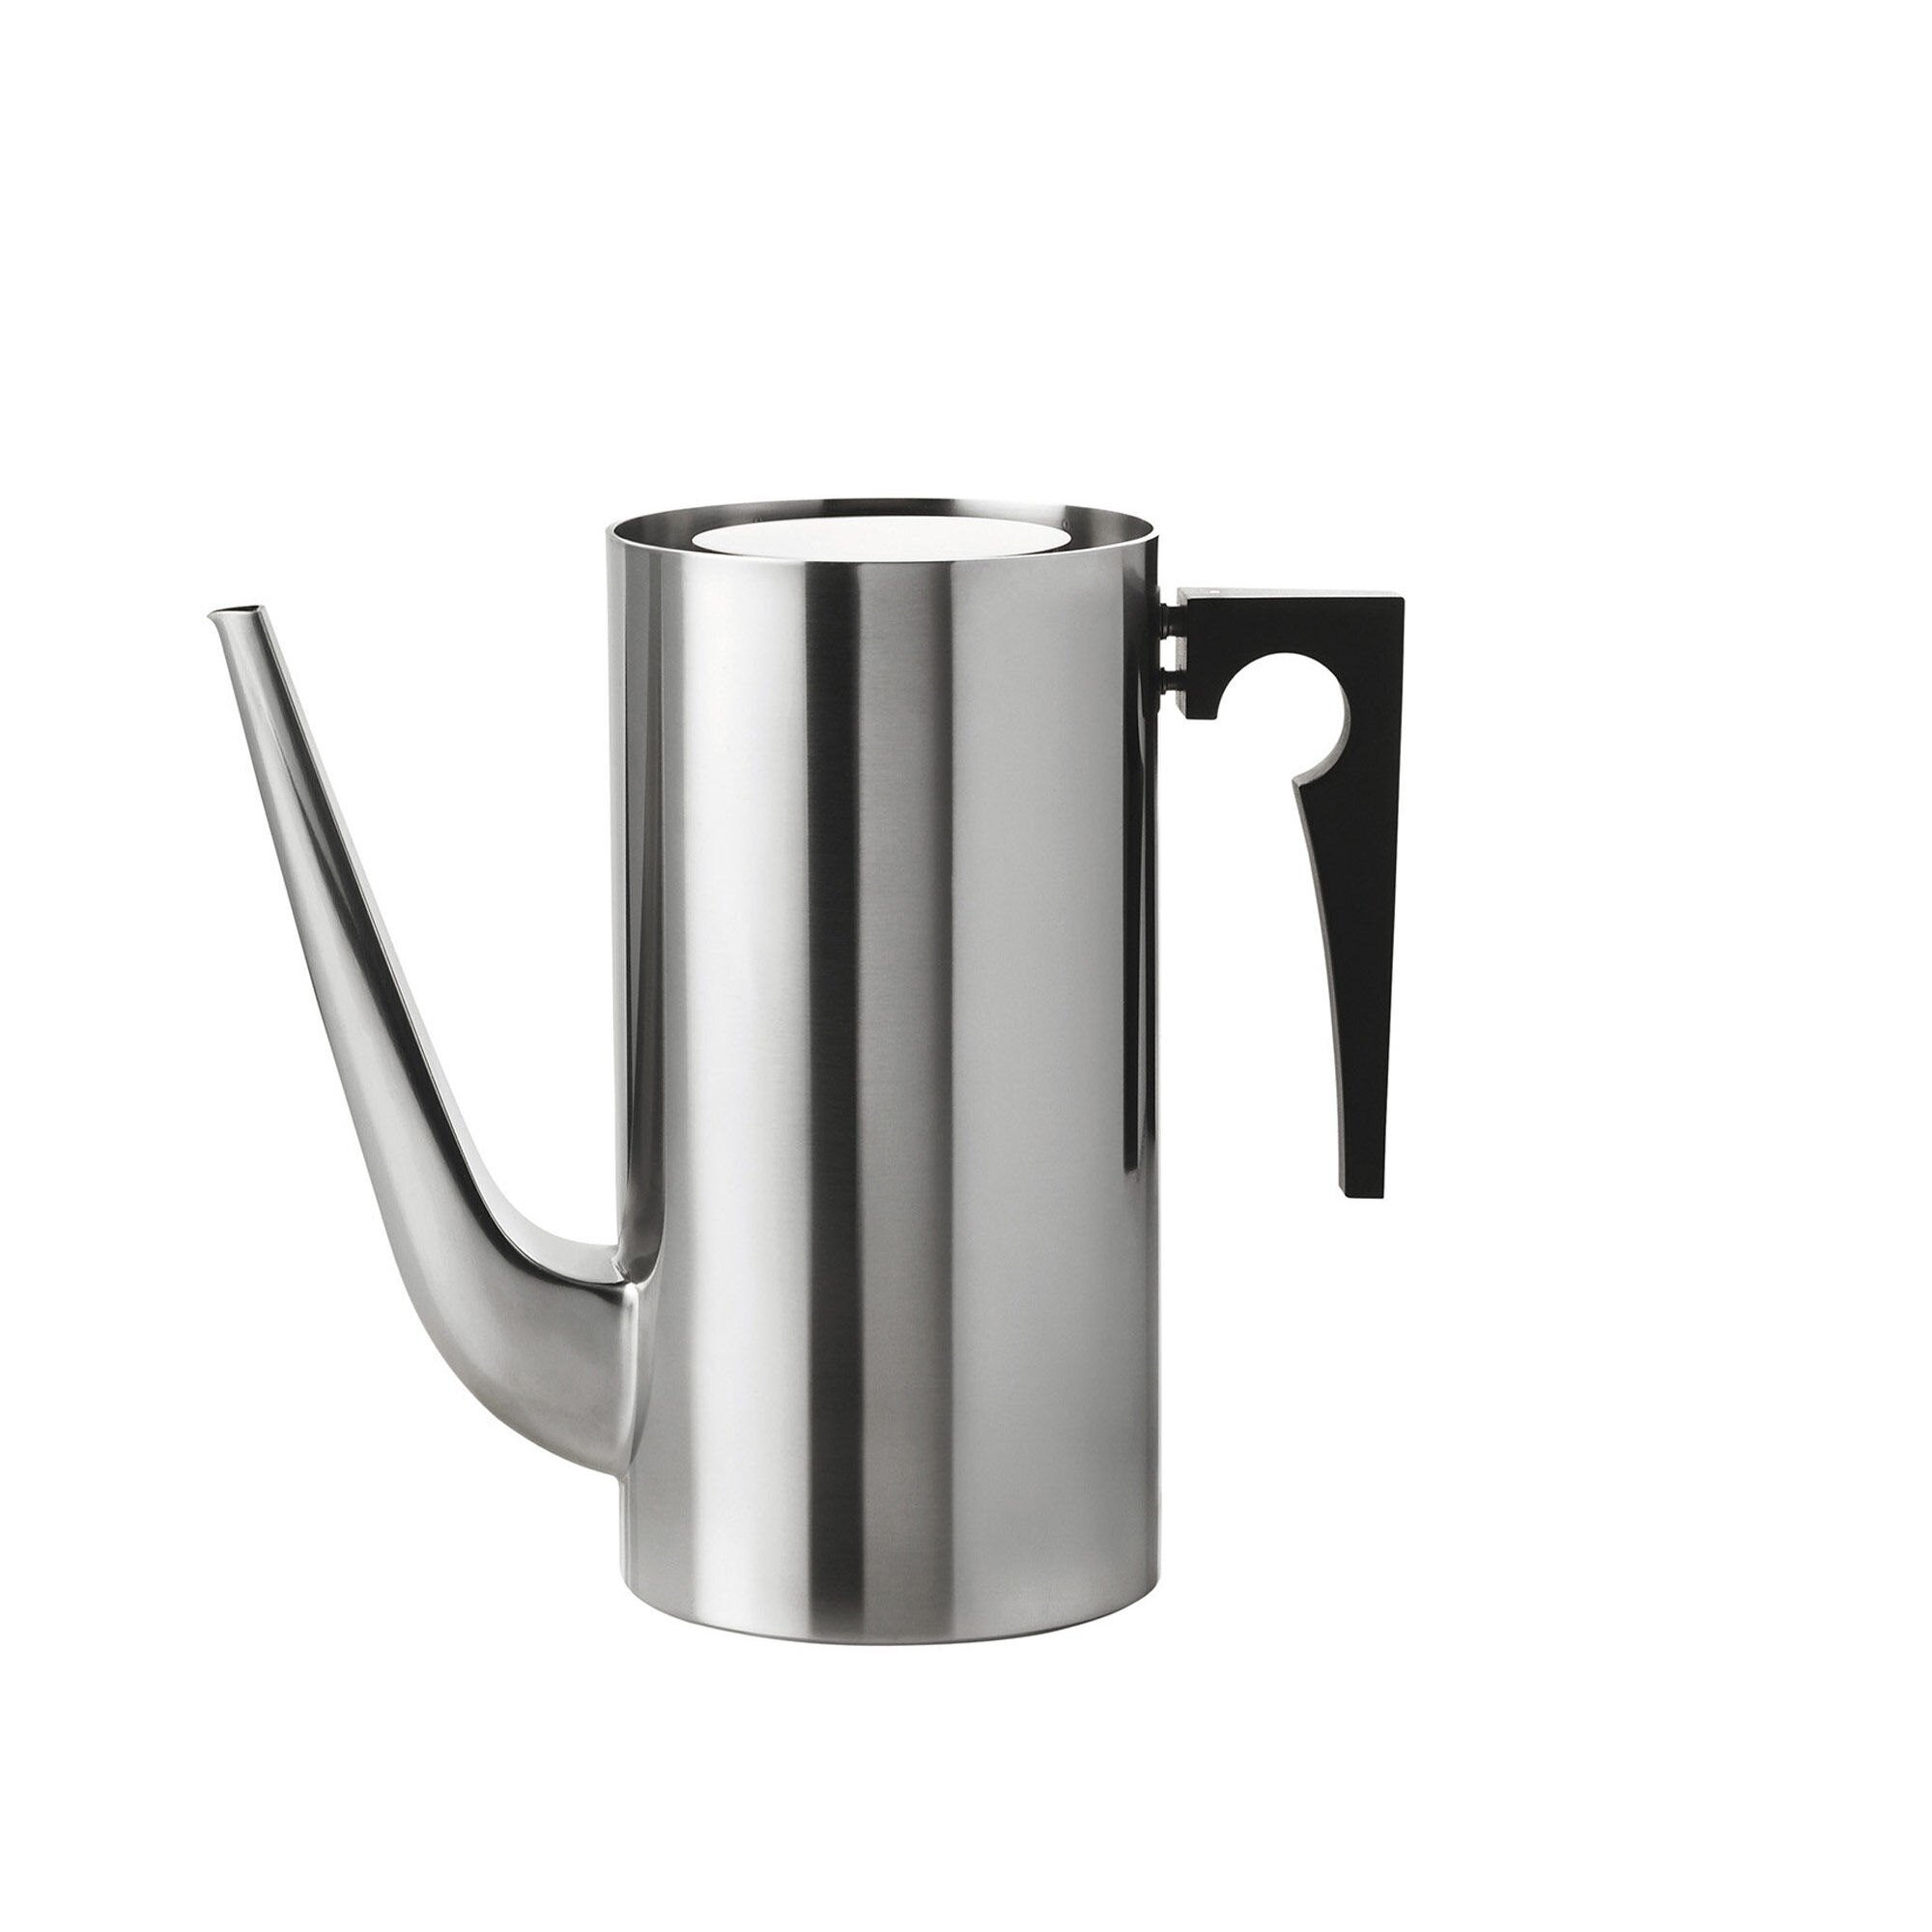 Stelton Stainless Steel Coffee Pot